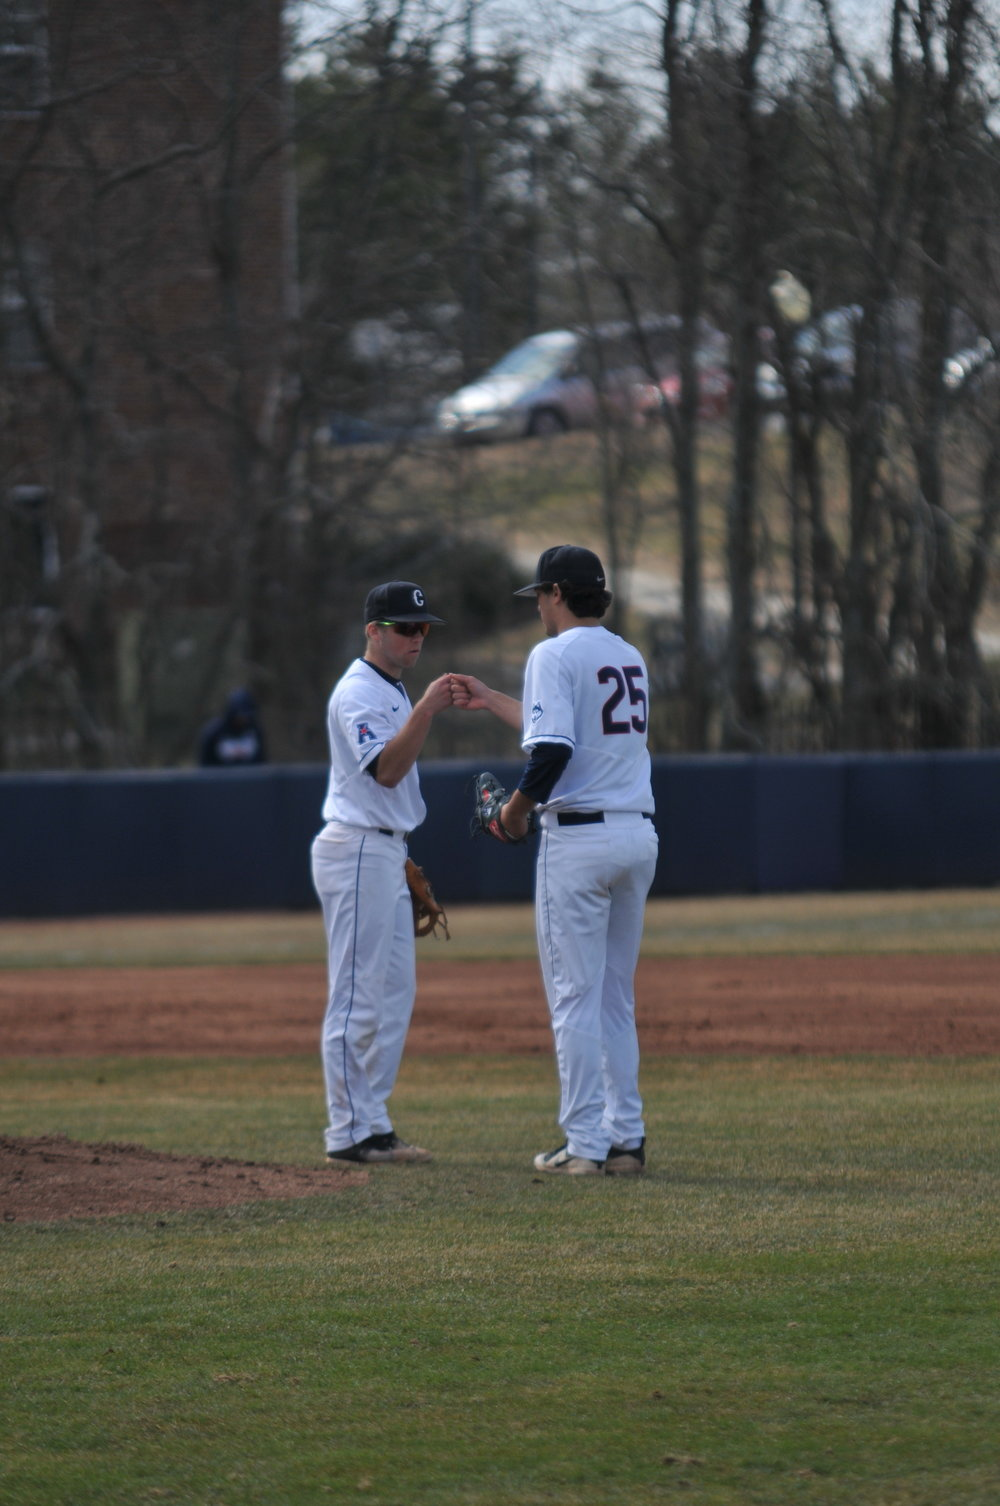 UConn baseball dominated MSU over the weekend, winning all four games. Photo by Eric Wang/The Daily Campus